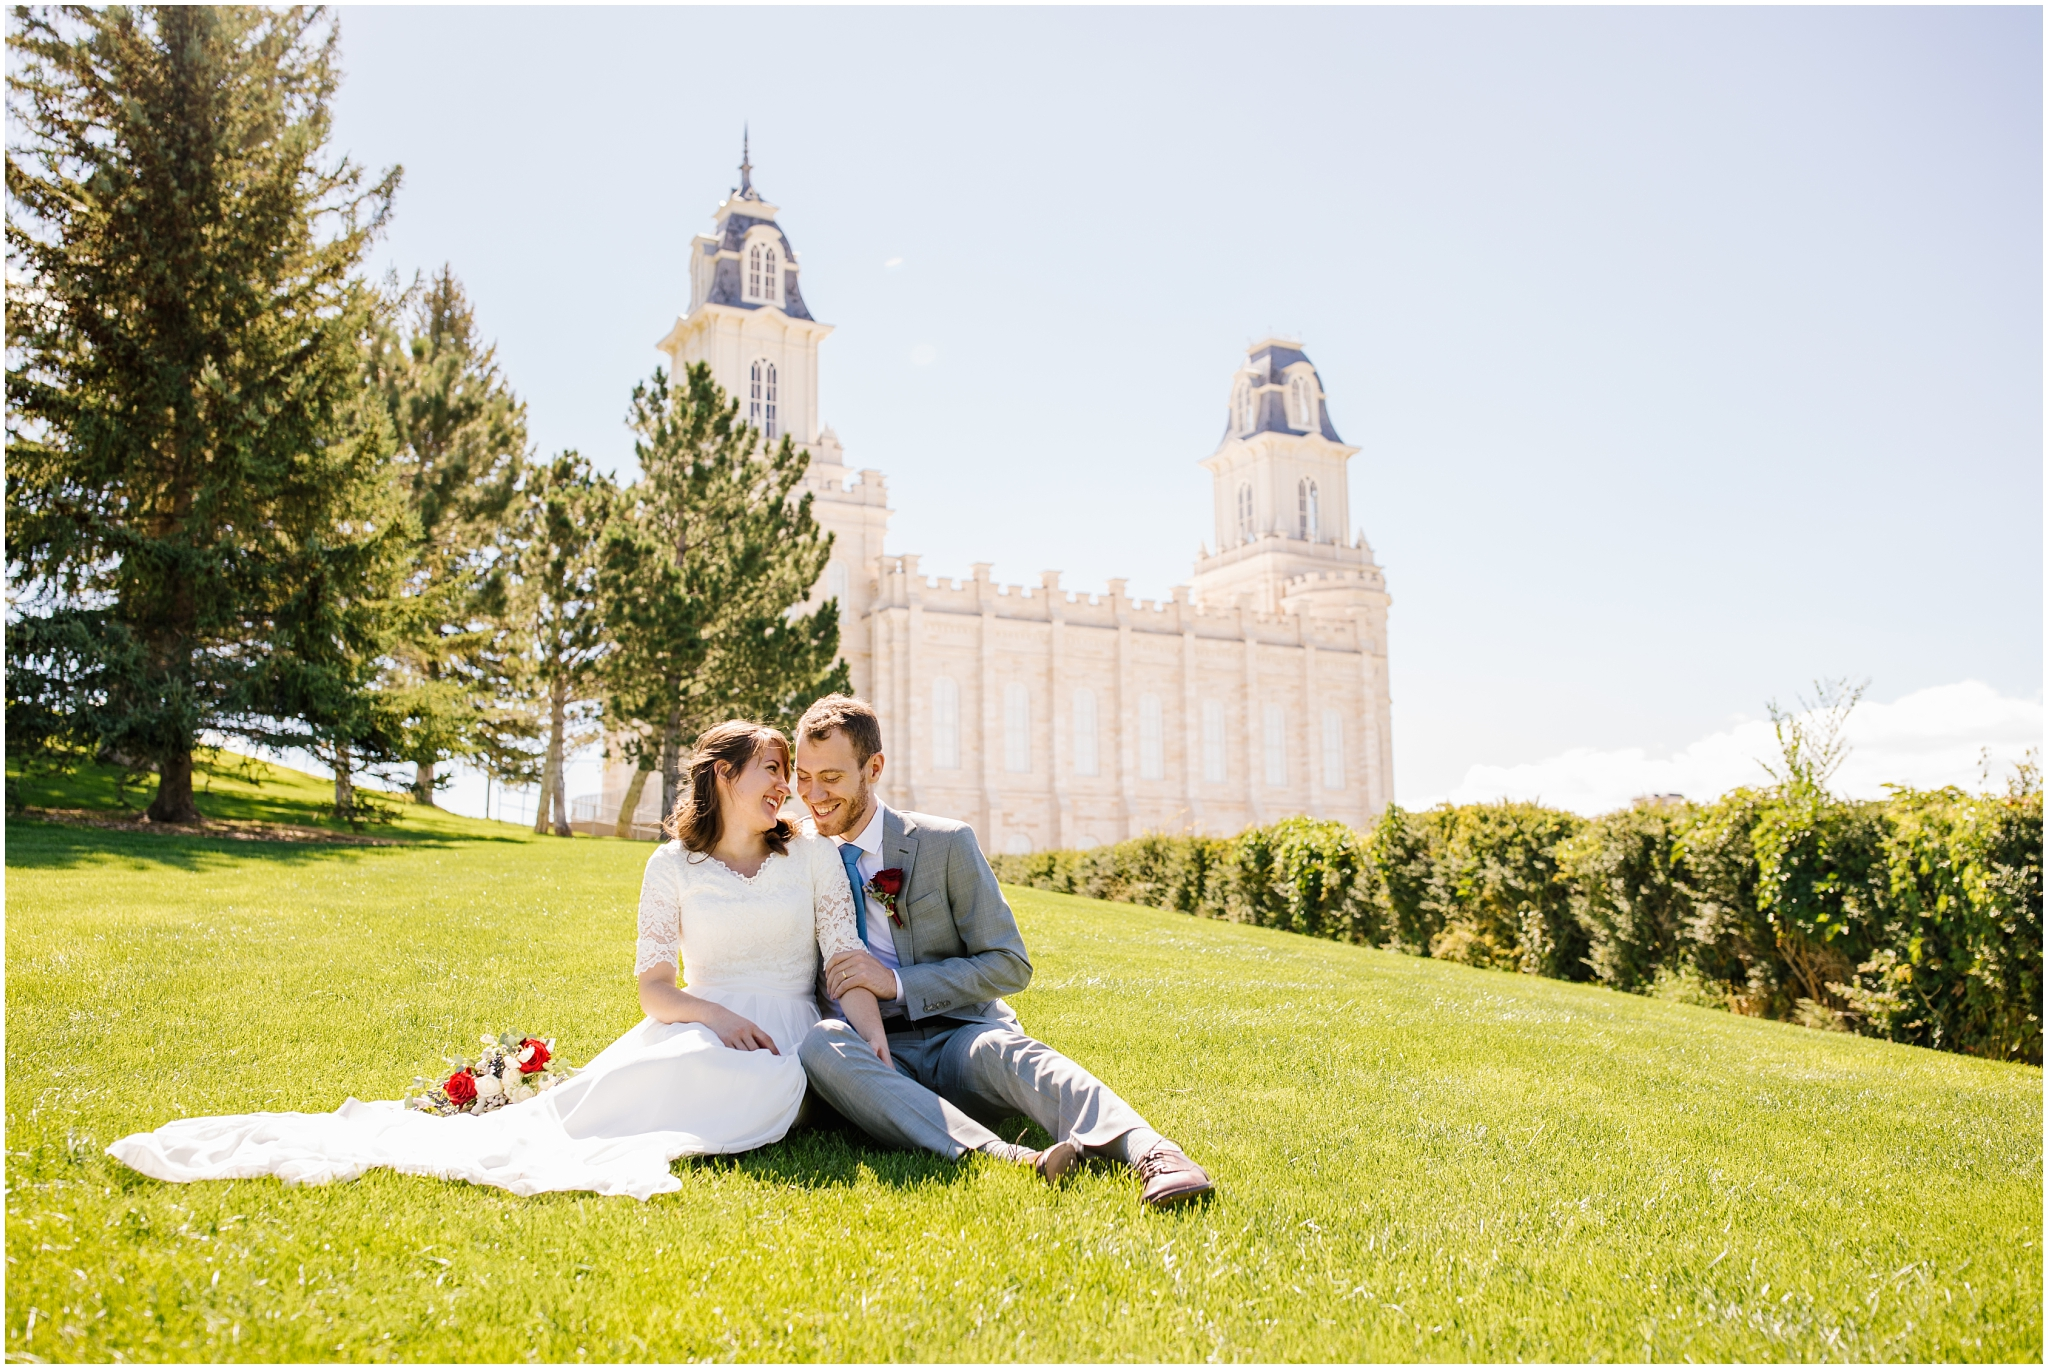 BrynneWinston-148_Lizzie-B-Imagery-Utah-Wedding-Photographer-Utah-County-Manti-Temple.jpg